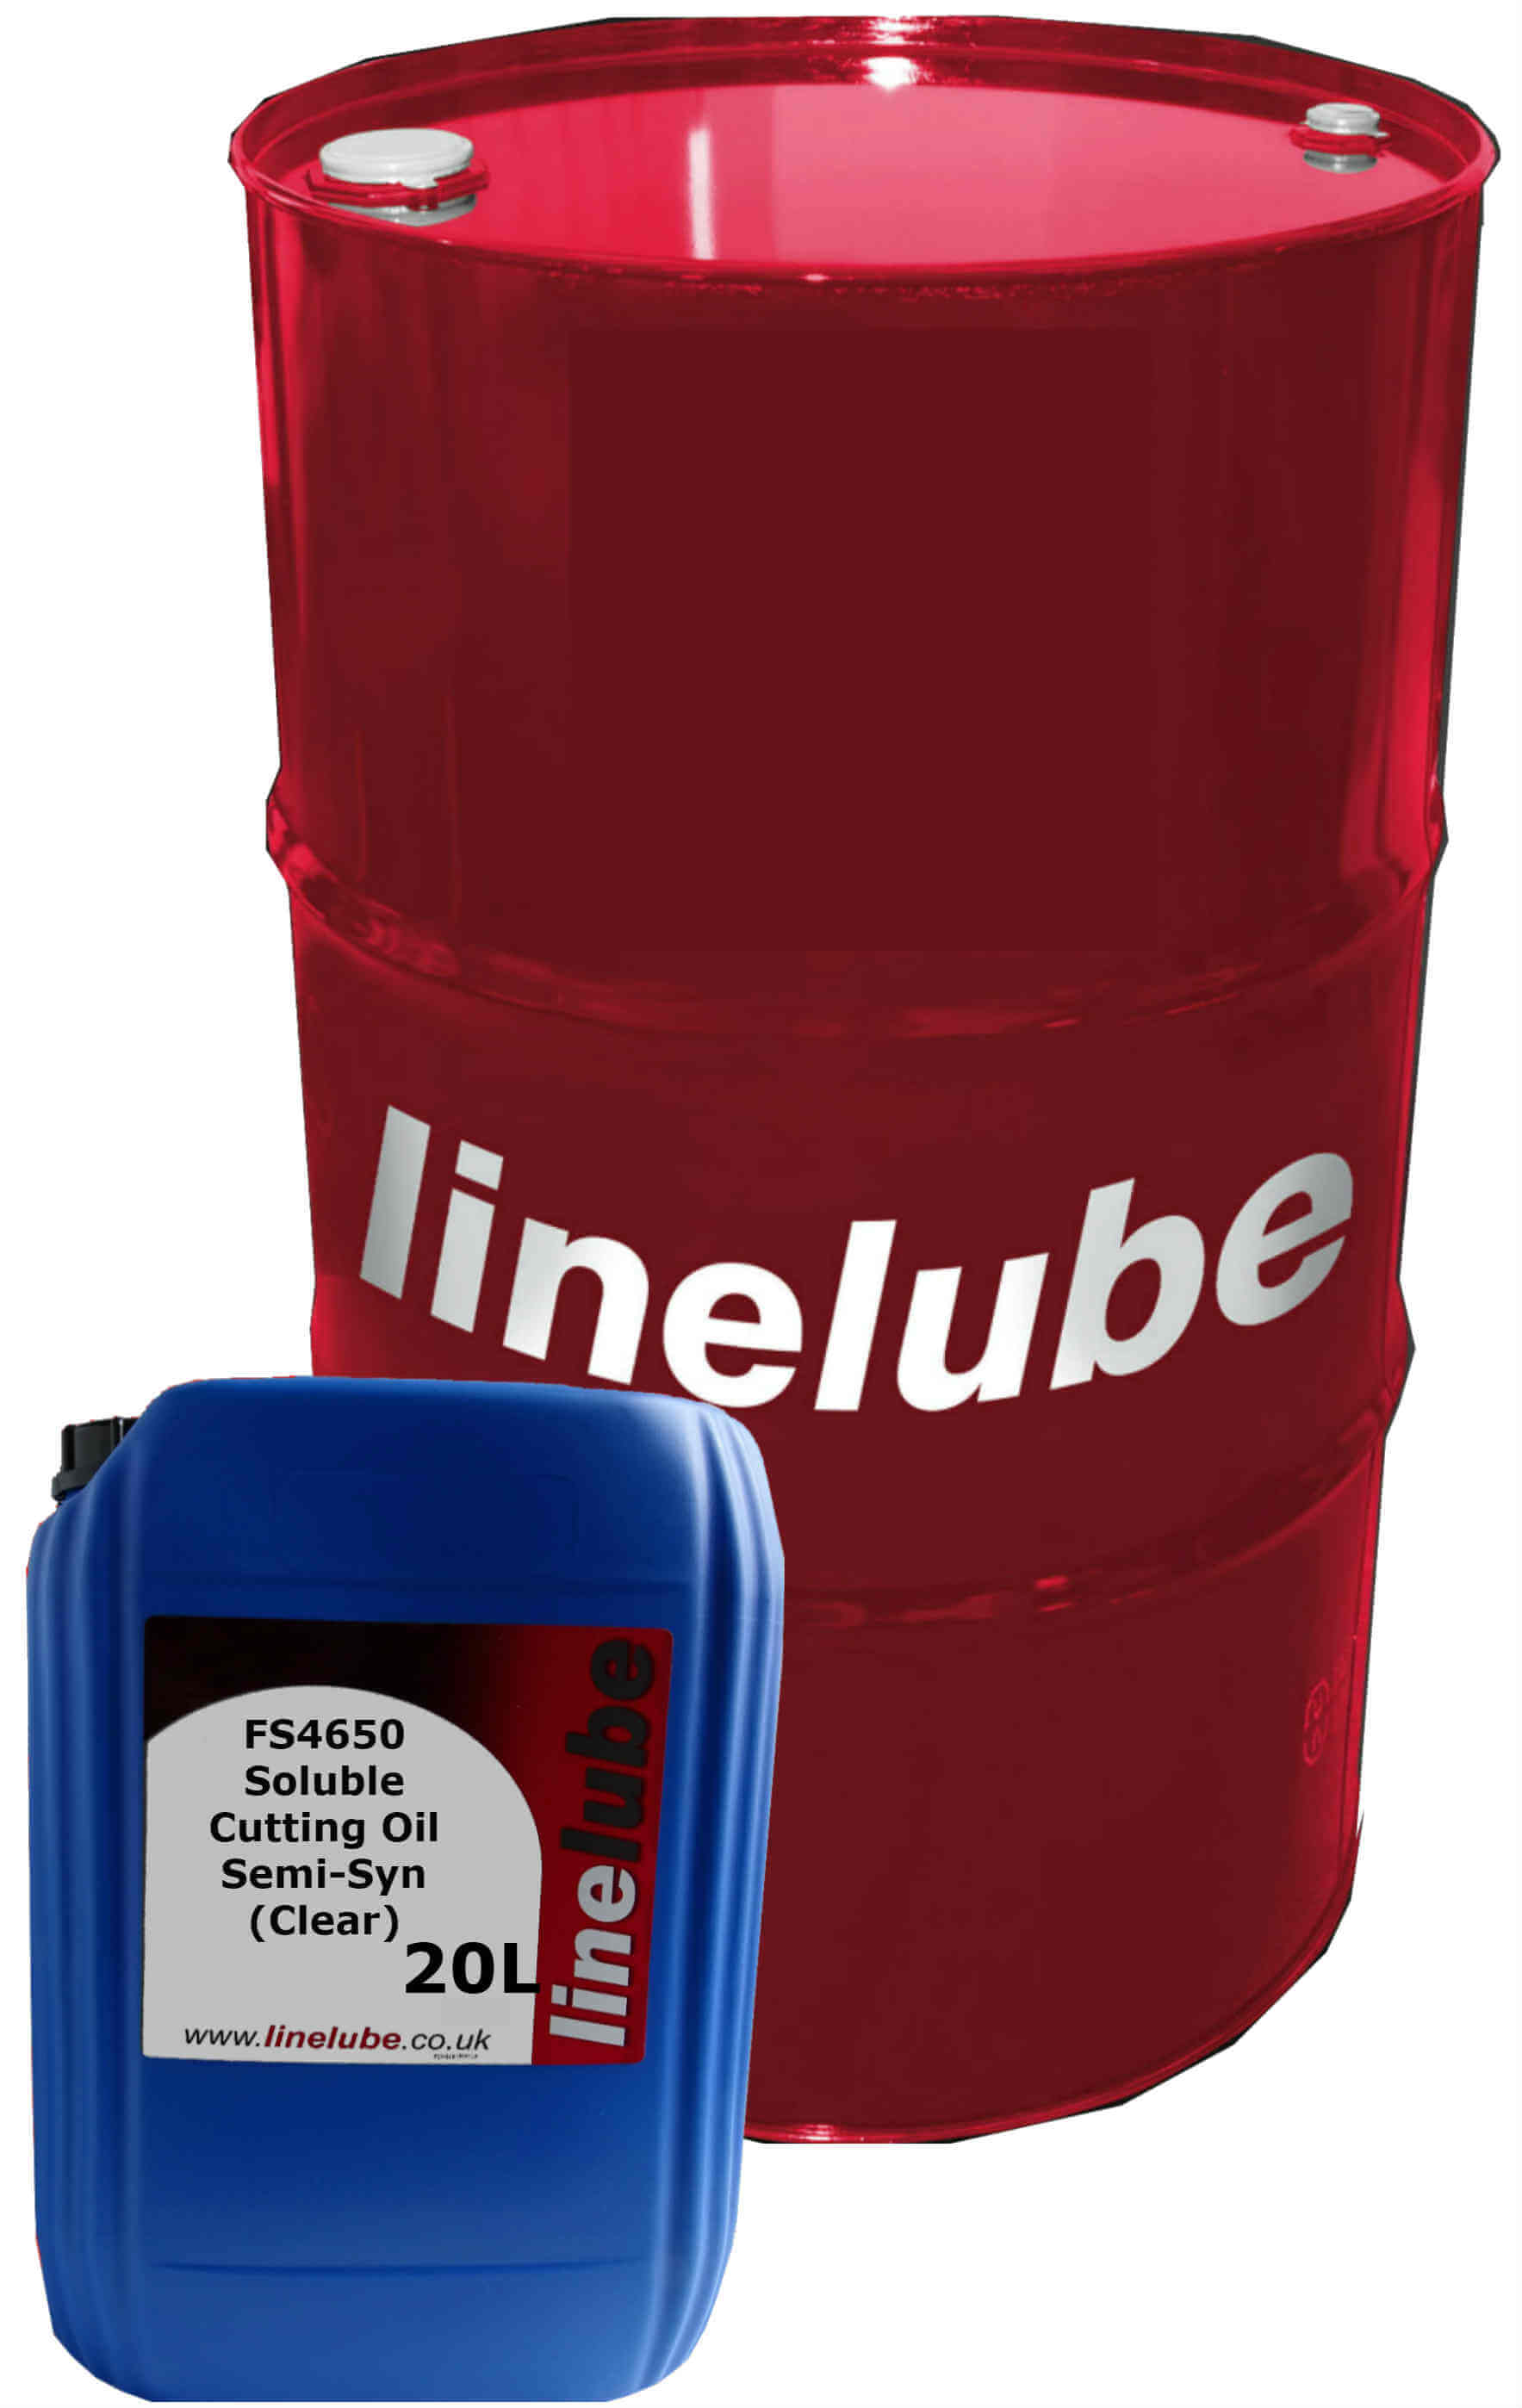 Linelube FS4650 Soluble Cutting Oil Semi-Syn (Clear)